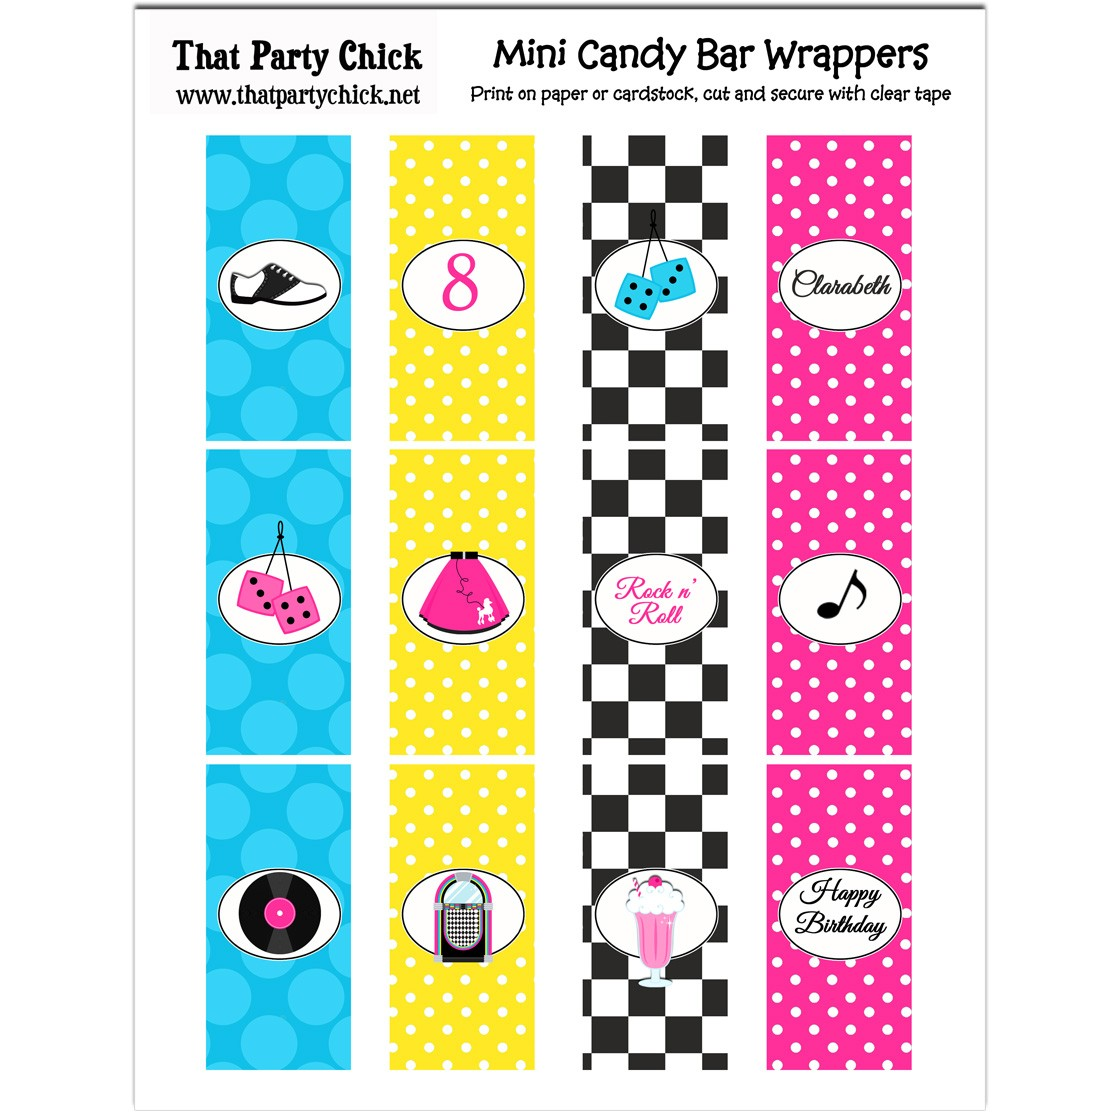 fifties 50s sock hop mini chocolate candy bar wrappers by that